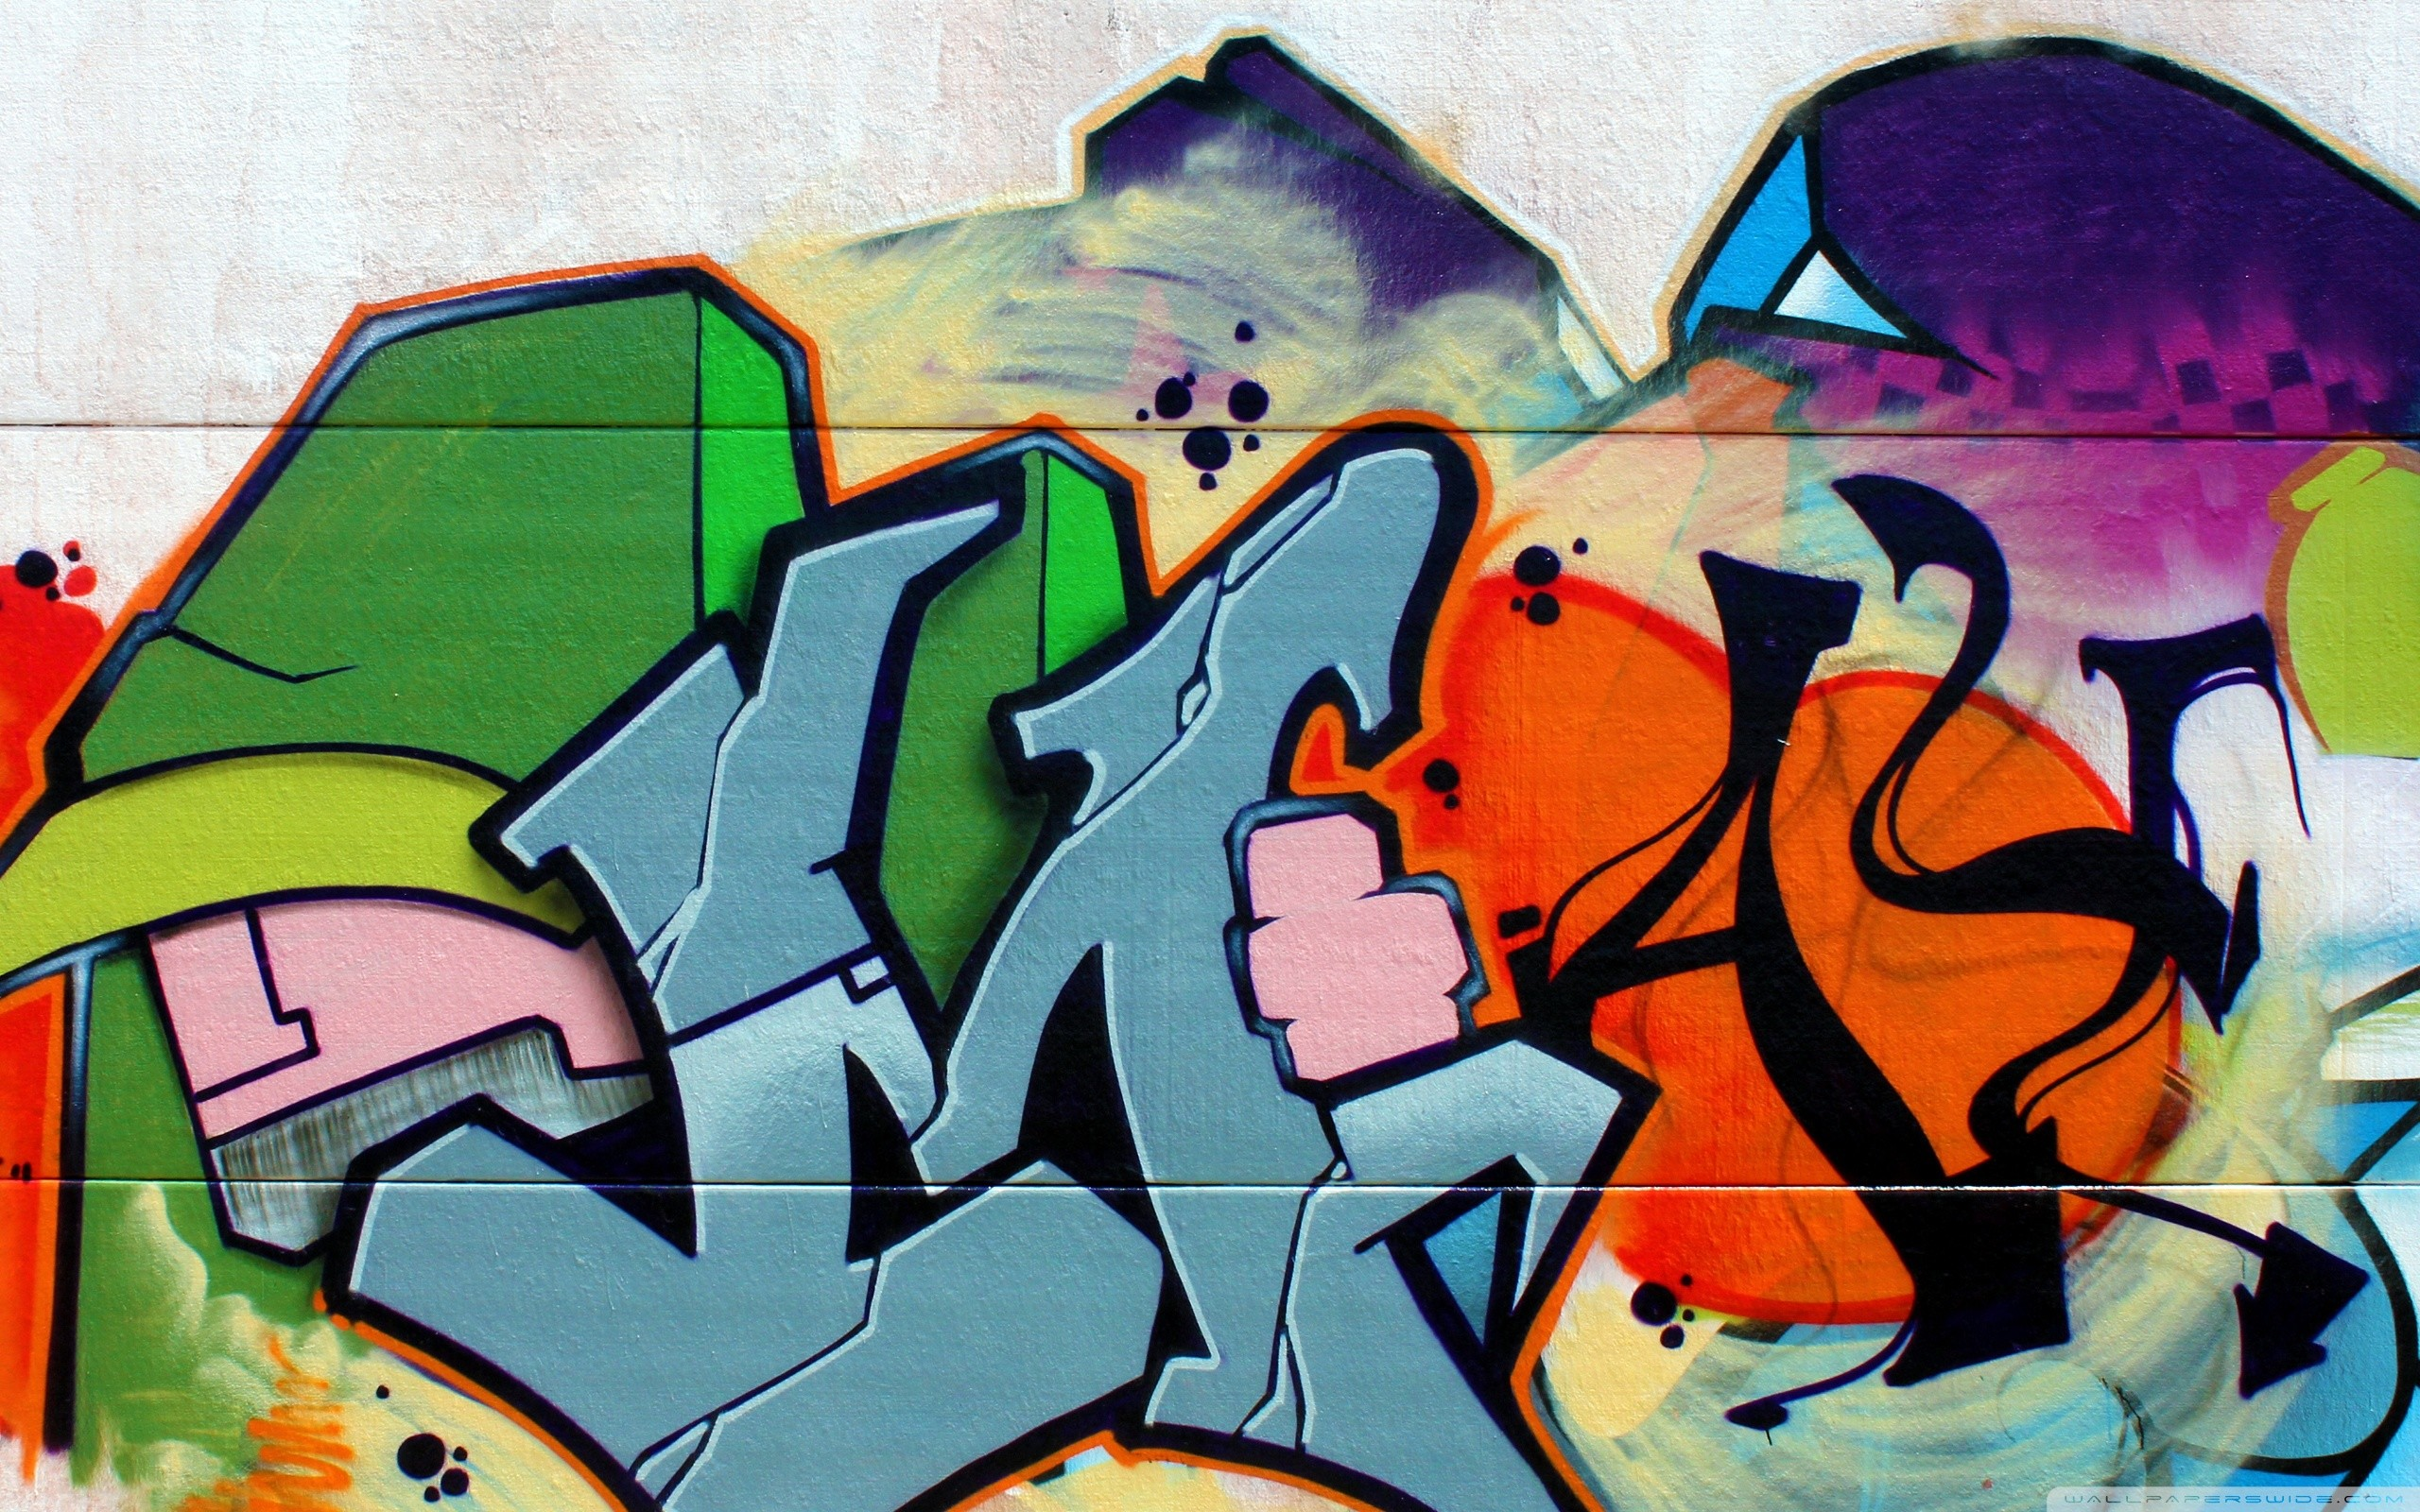 Best Graffiti Wallpaper Full Hd 1080P Wallpapers Desktop Backgrounds